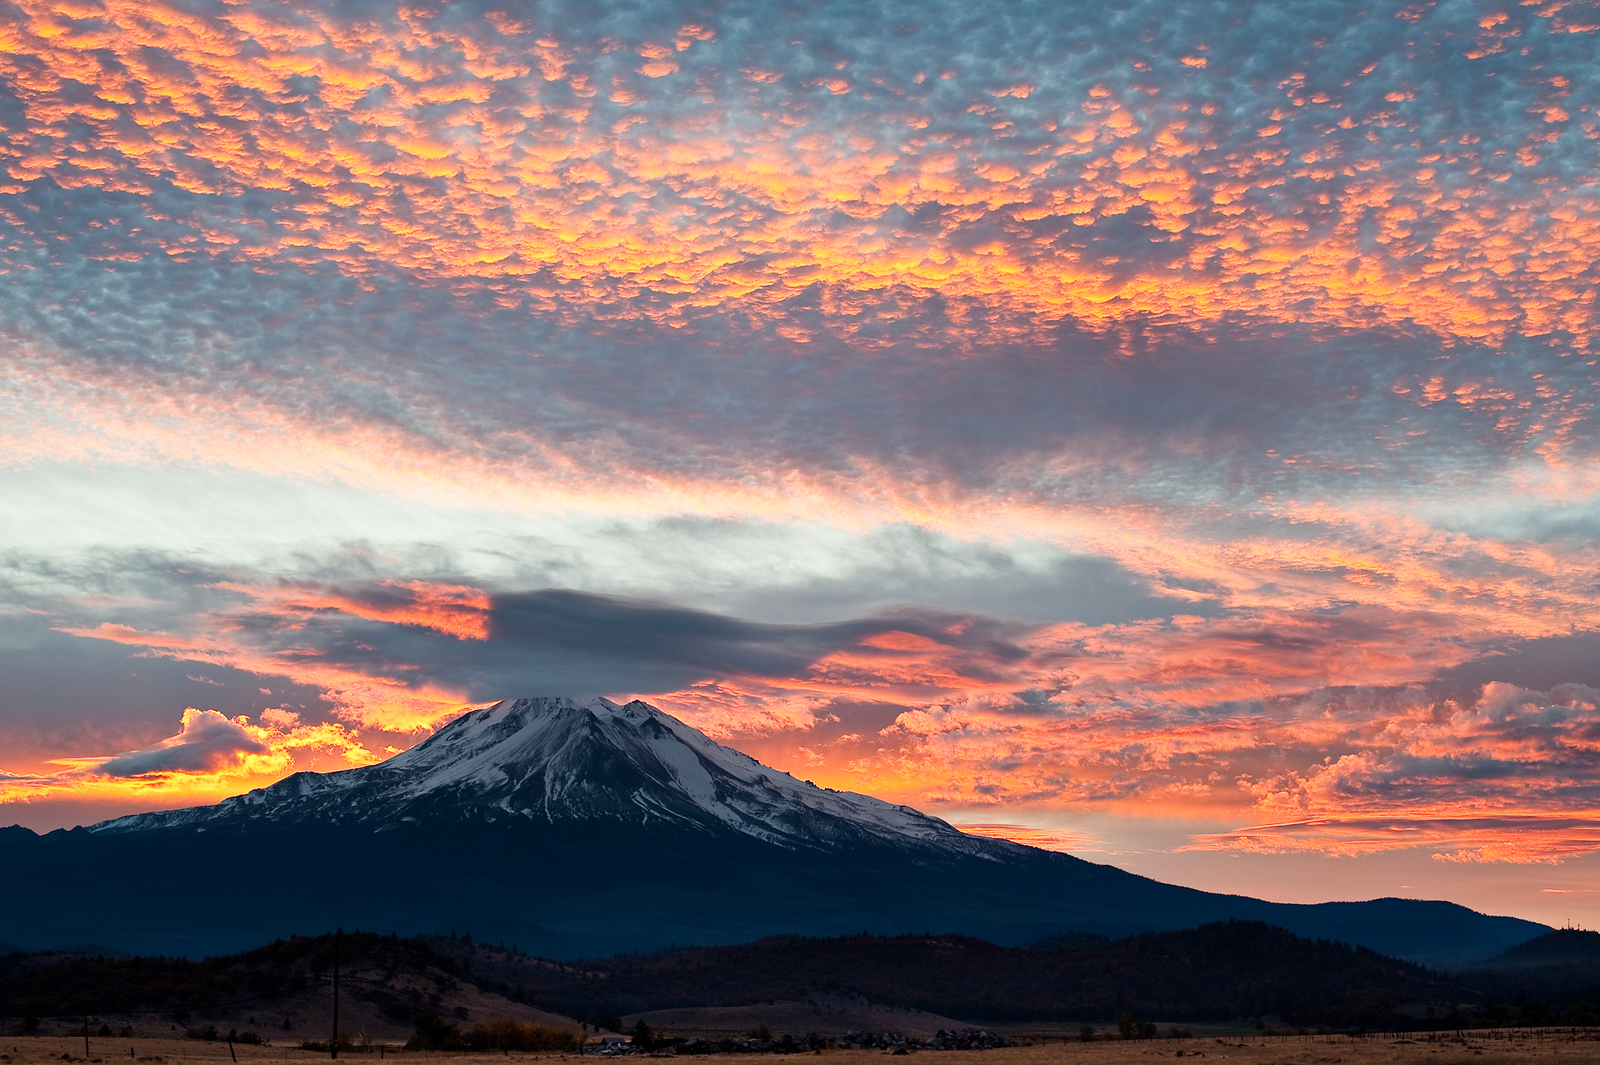 Sunrise behind Mt. Shasta